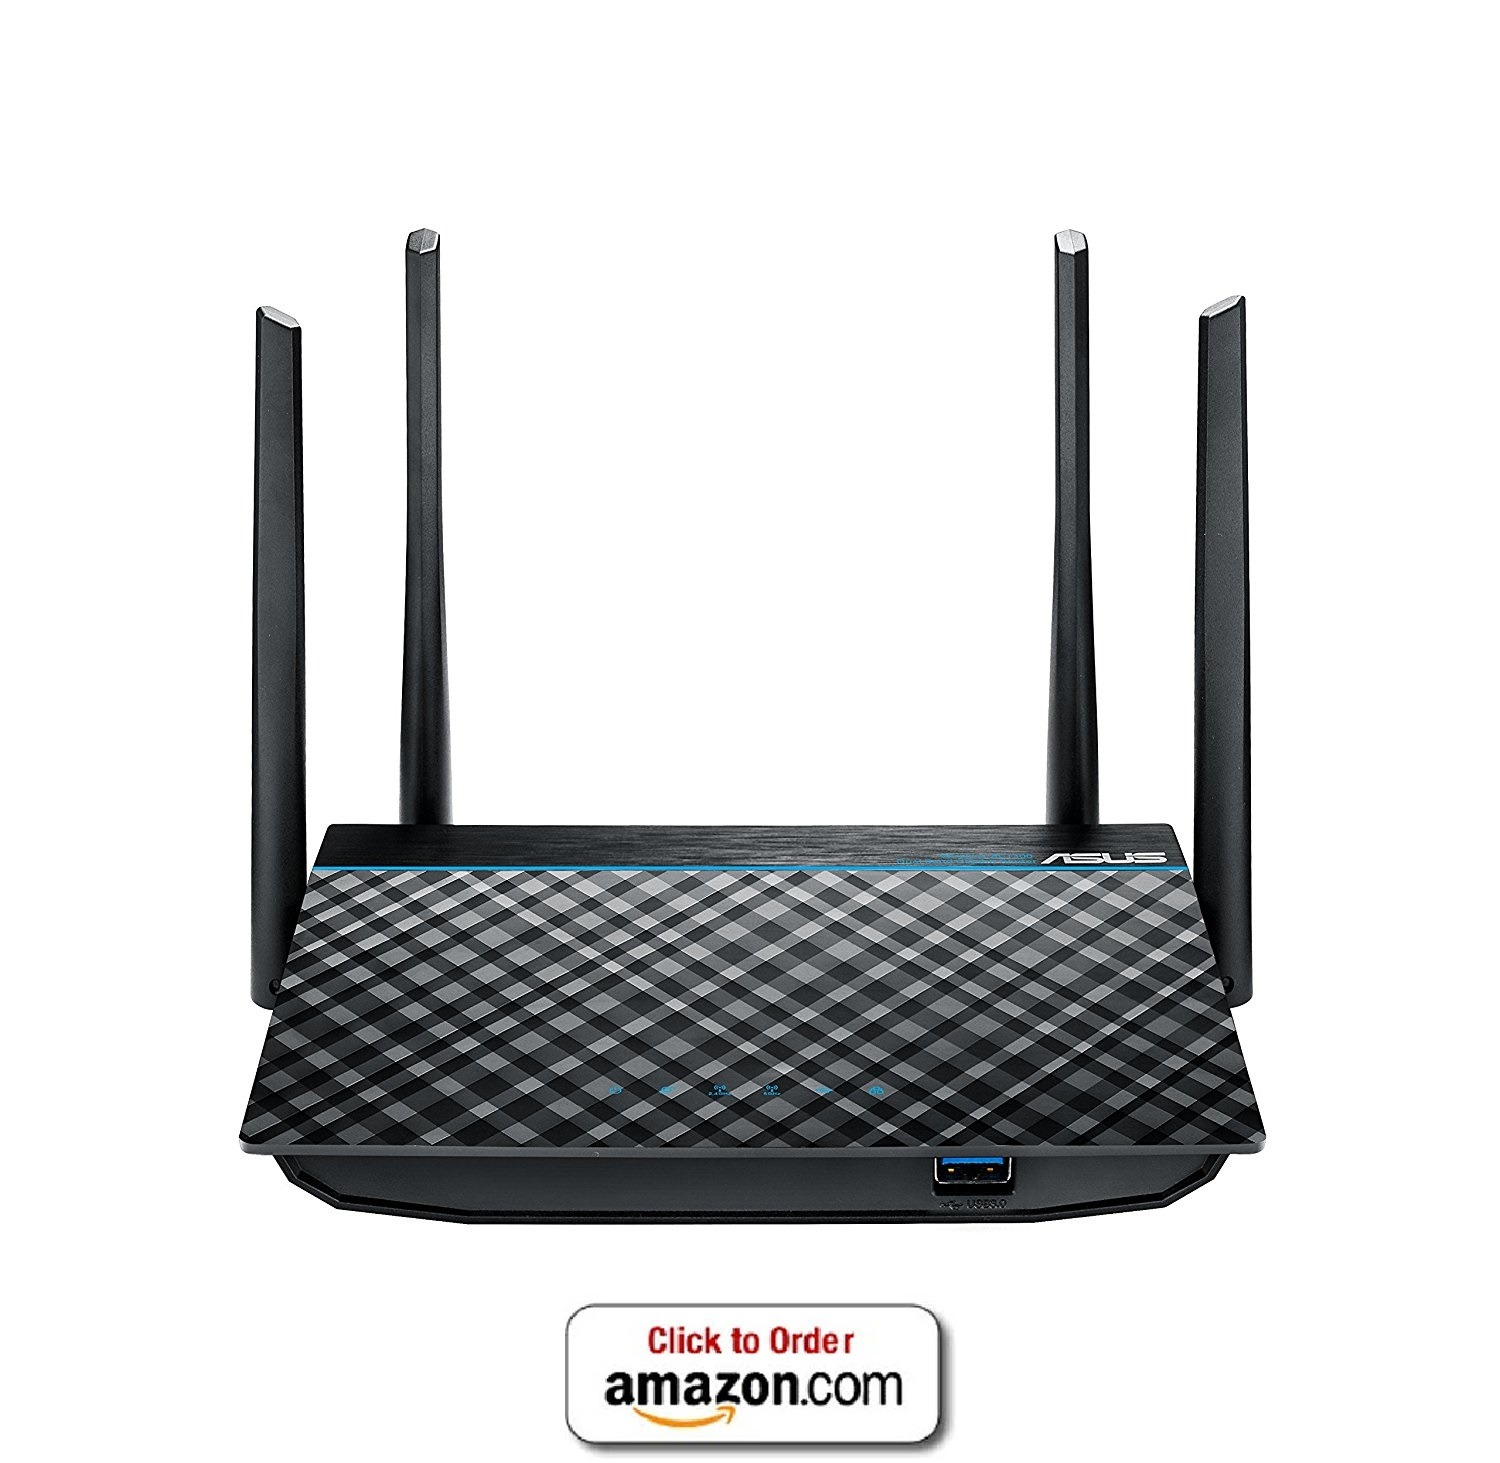 Asus Wifi 4-port Gigabit Router with USB 3.0